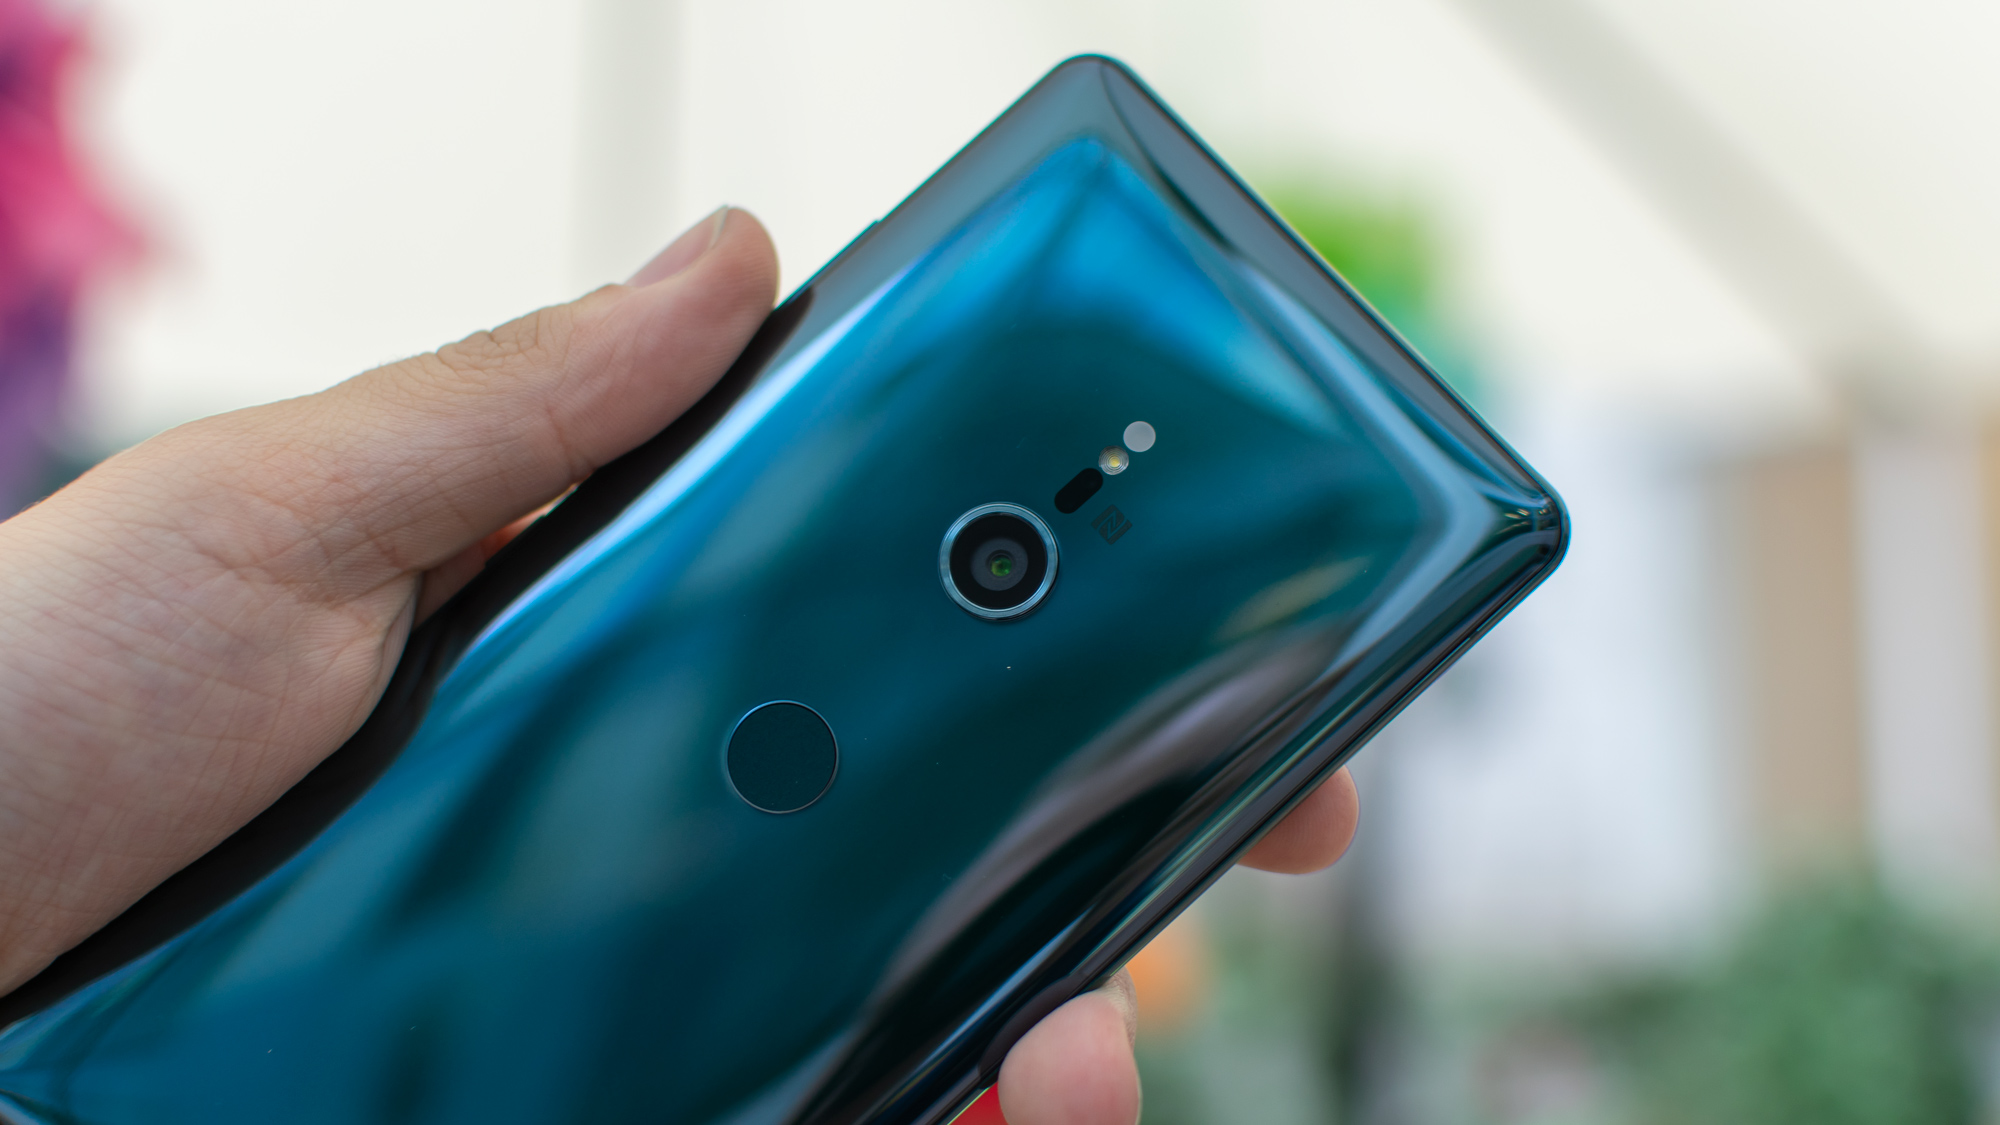 Hands on: Sony unveils the bigger, brighter Xperia XZ3 flagship phone